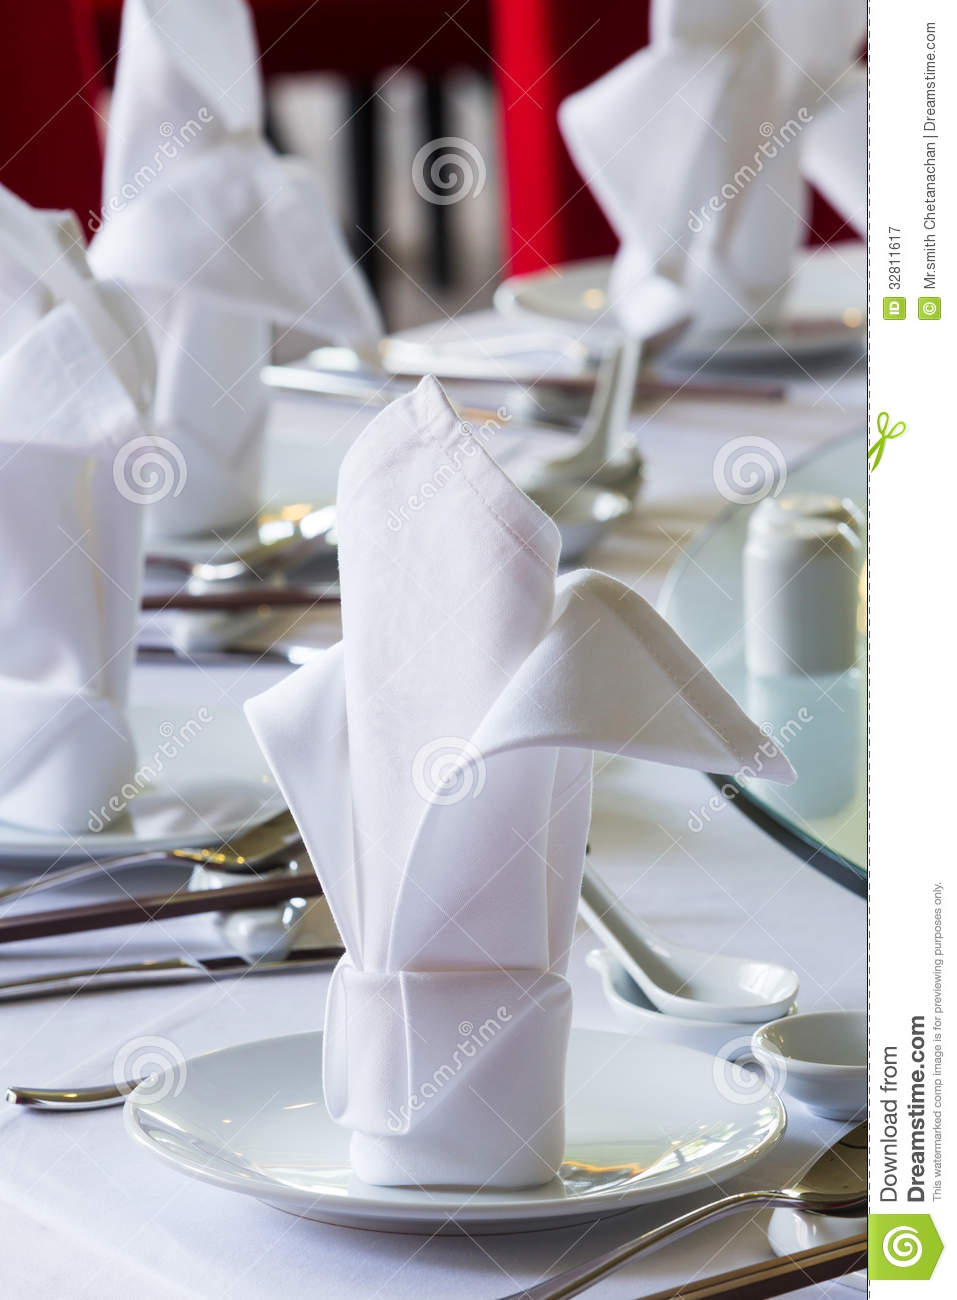 Chinese Dining Table Setup Royalty Free Stock Photography  : chinese dining table setup close up white napkin set up 32811617 from www.dreamstime.com size 957 x 1300 jpeg 105kB